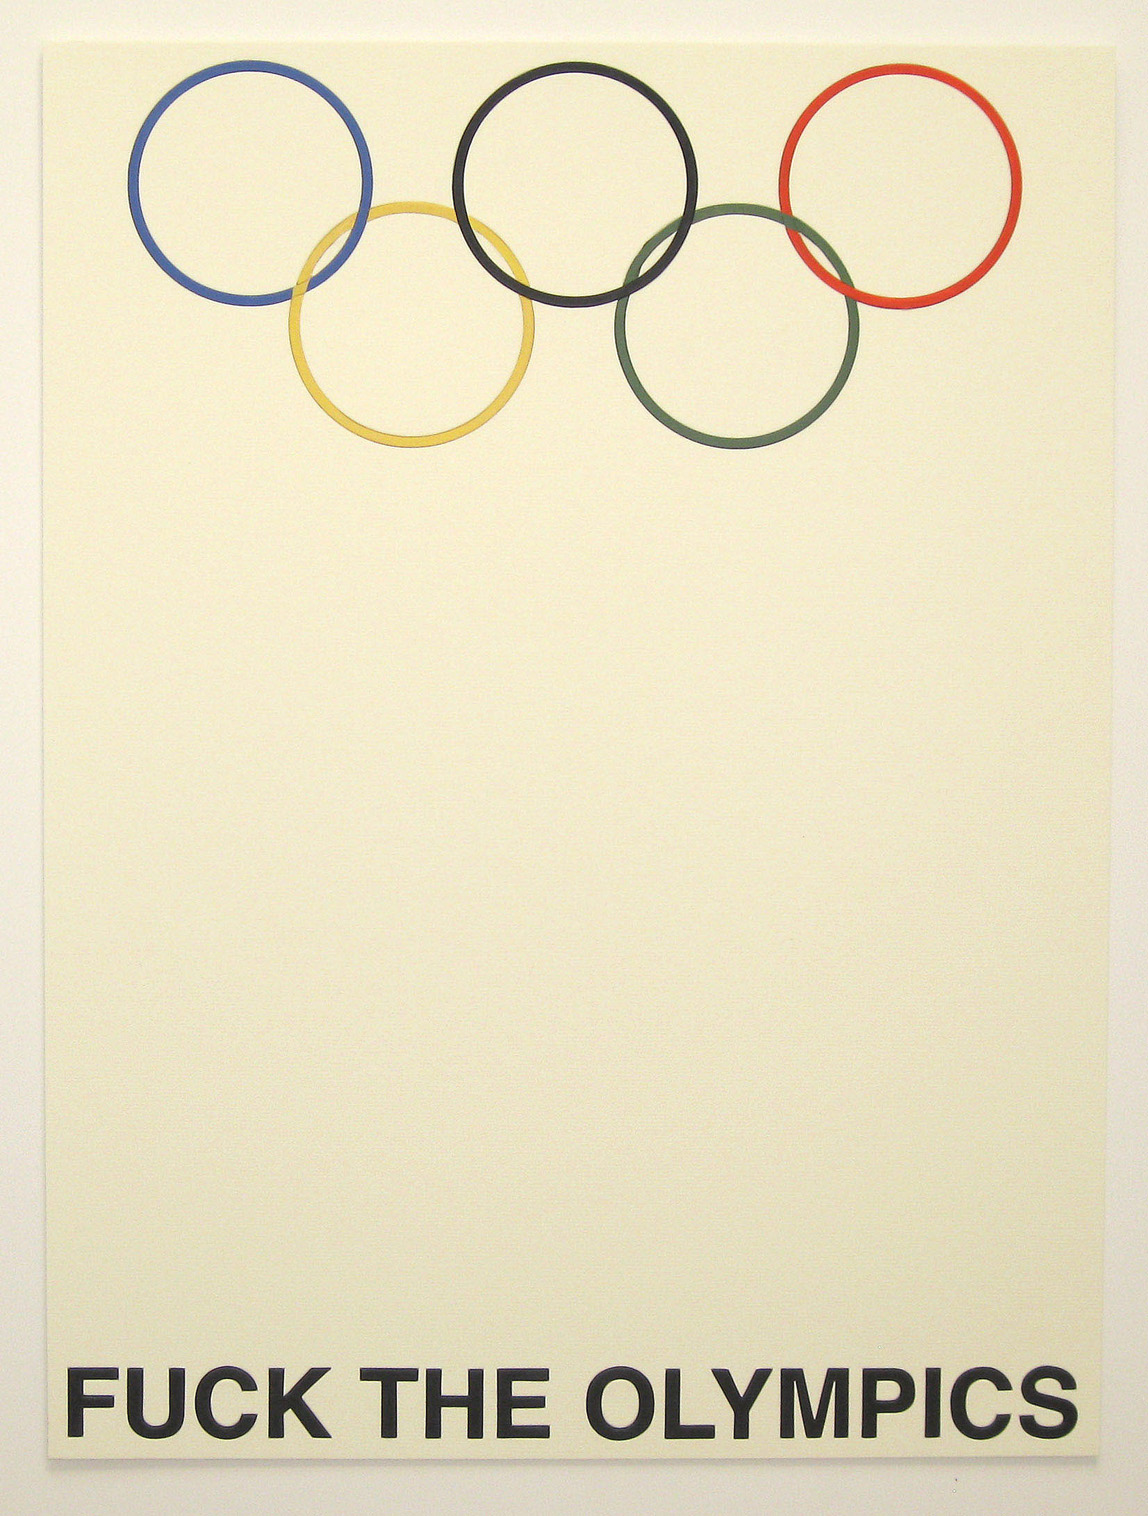 Fuck the Olympics, Die-cut board, signed edition of 15. $500